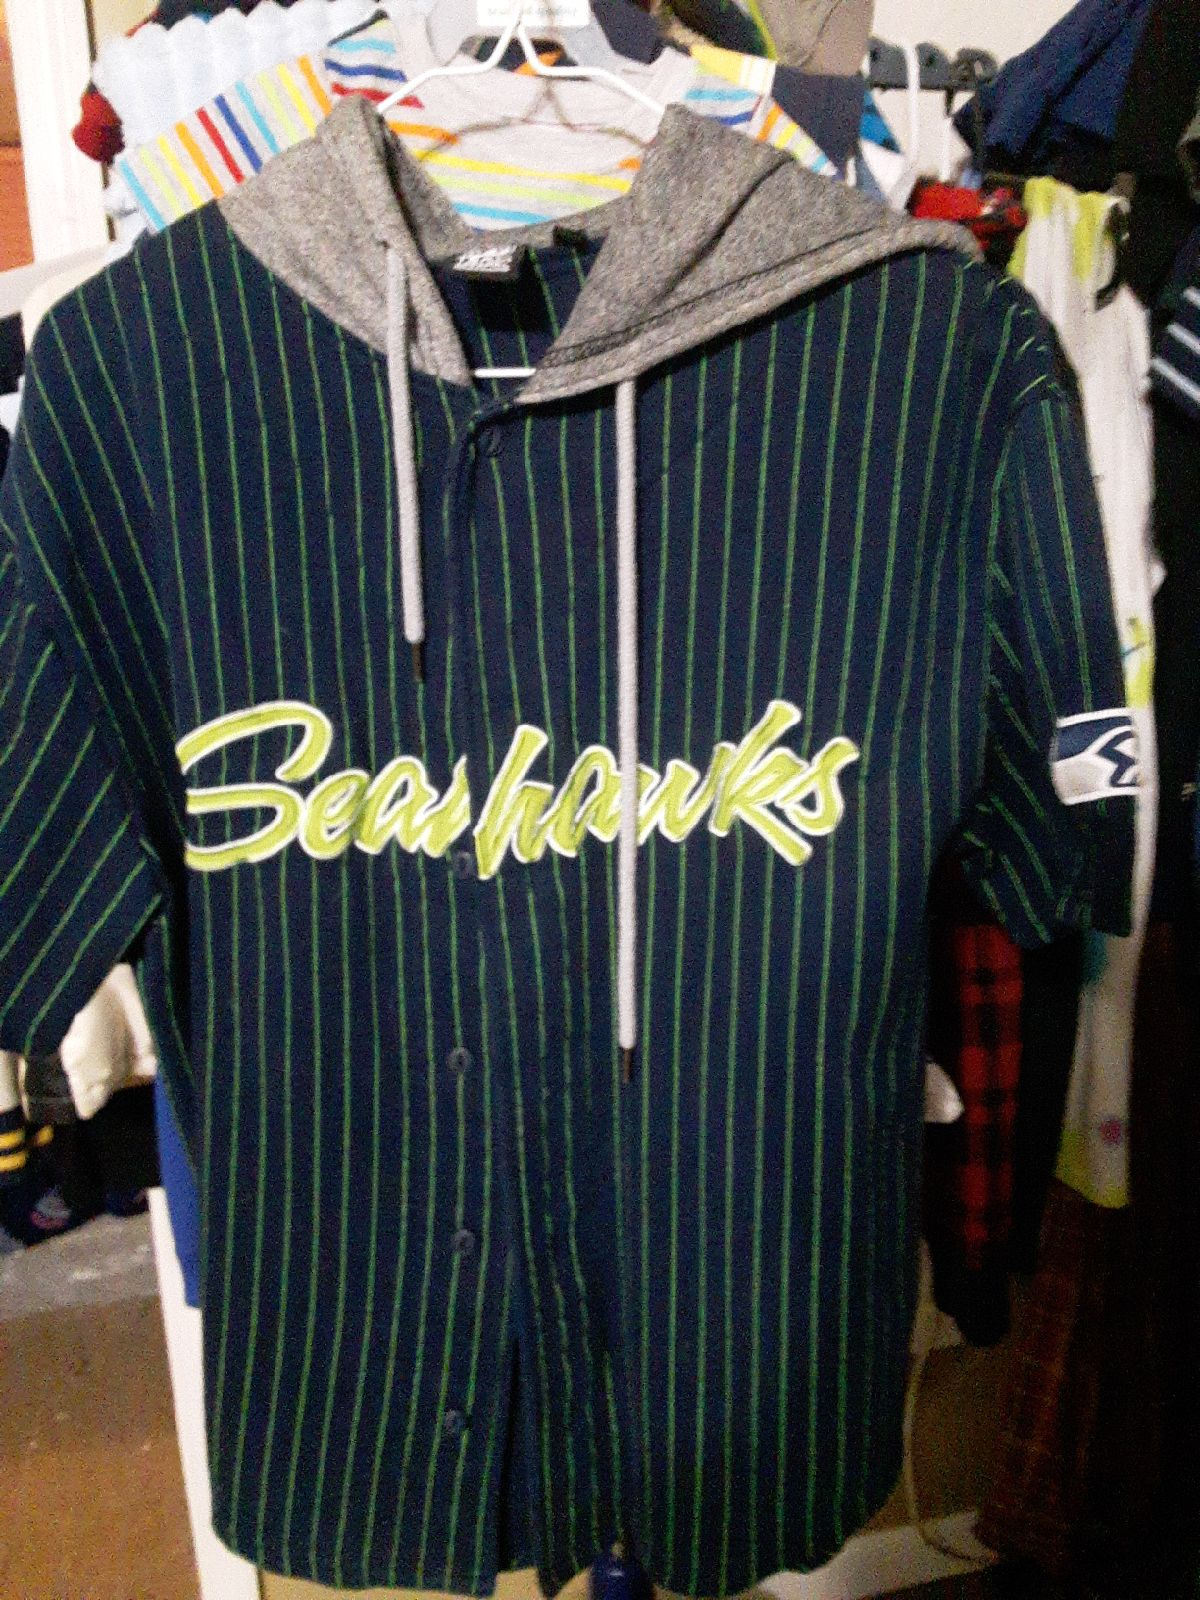 Seattle Seahawks button up shirt